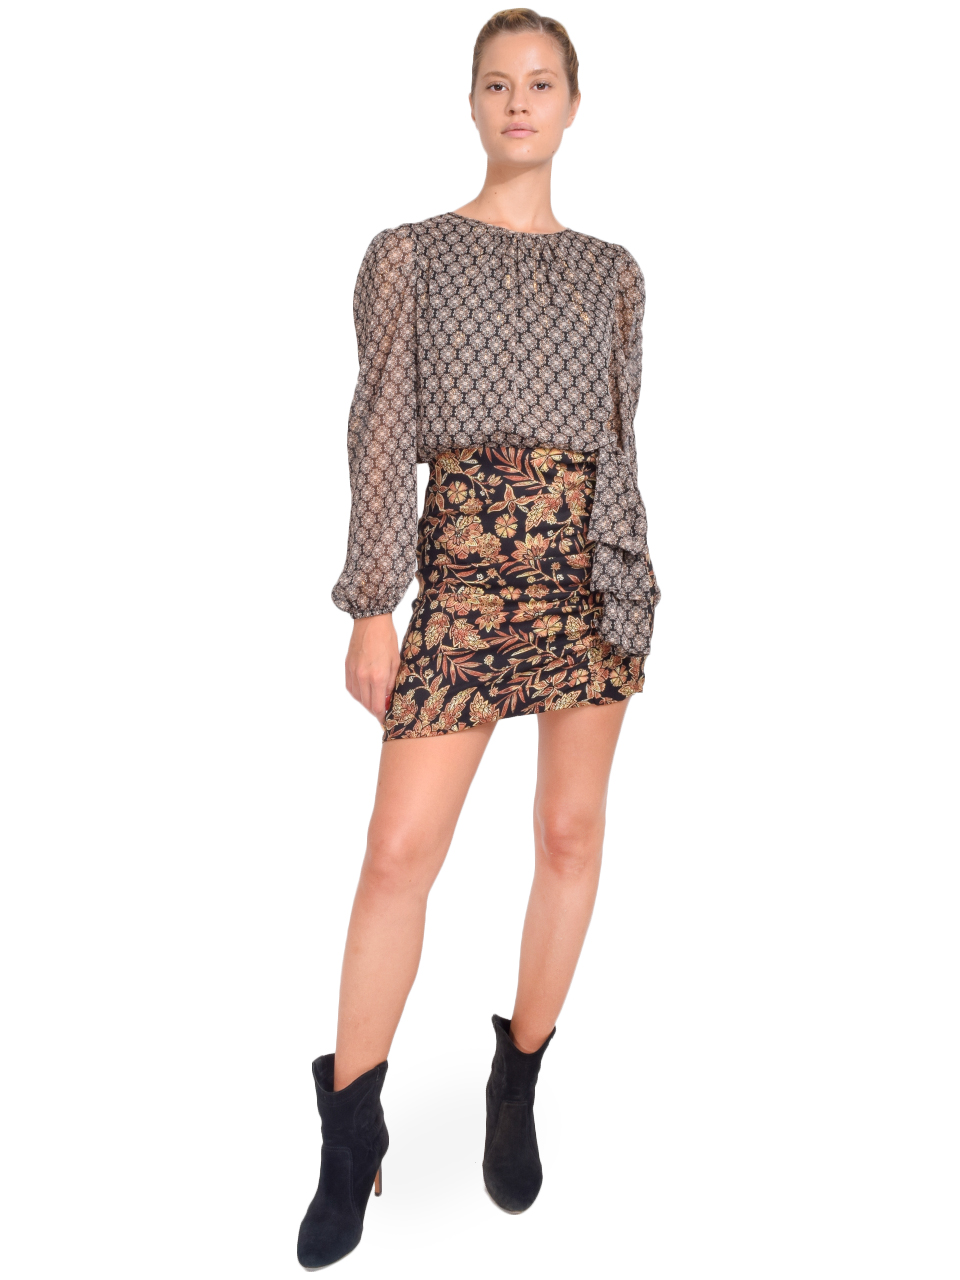 MISA Amber Dress in Gilded Paisley Front View X1https://cdn11.bigcommerce.com/s-3wu6n/products/33378/images/110323/41__72017.1599694286.244.365.jpg?c=2X2